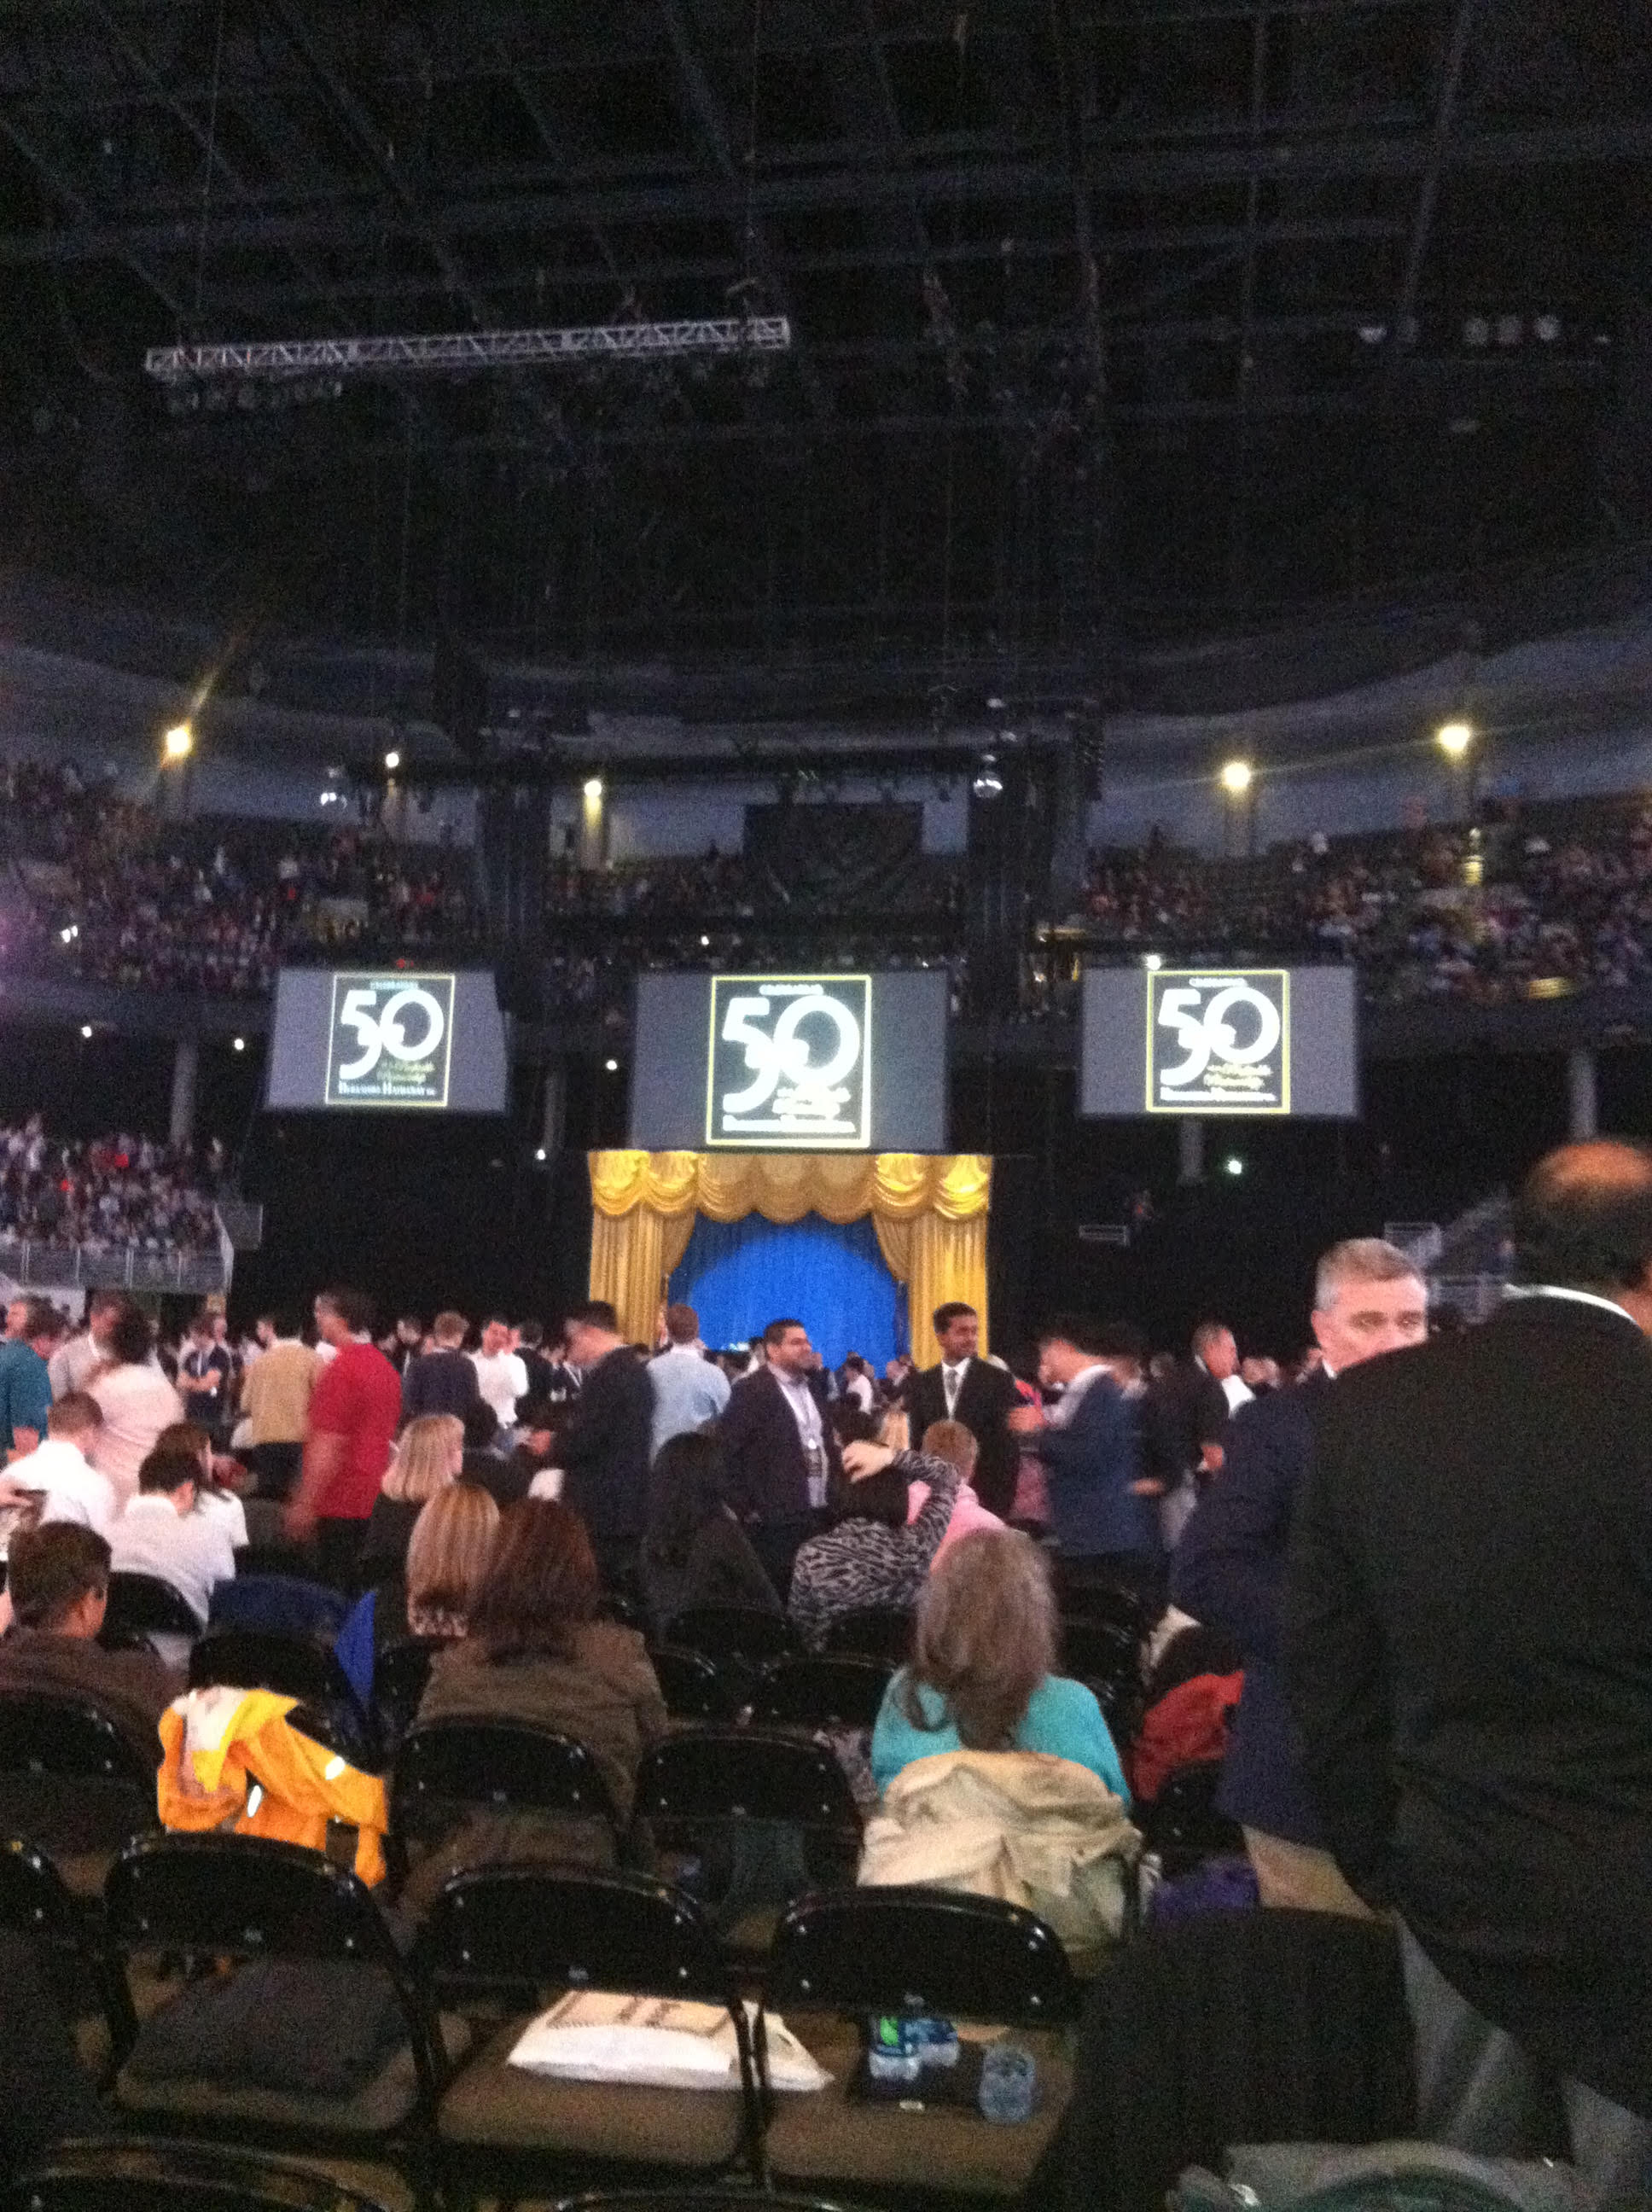 Berkshire Hathaway 50th annual meeting